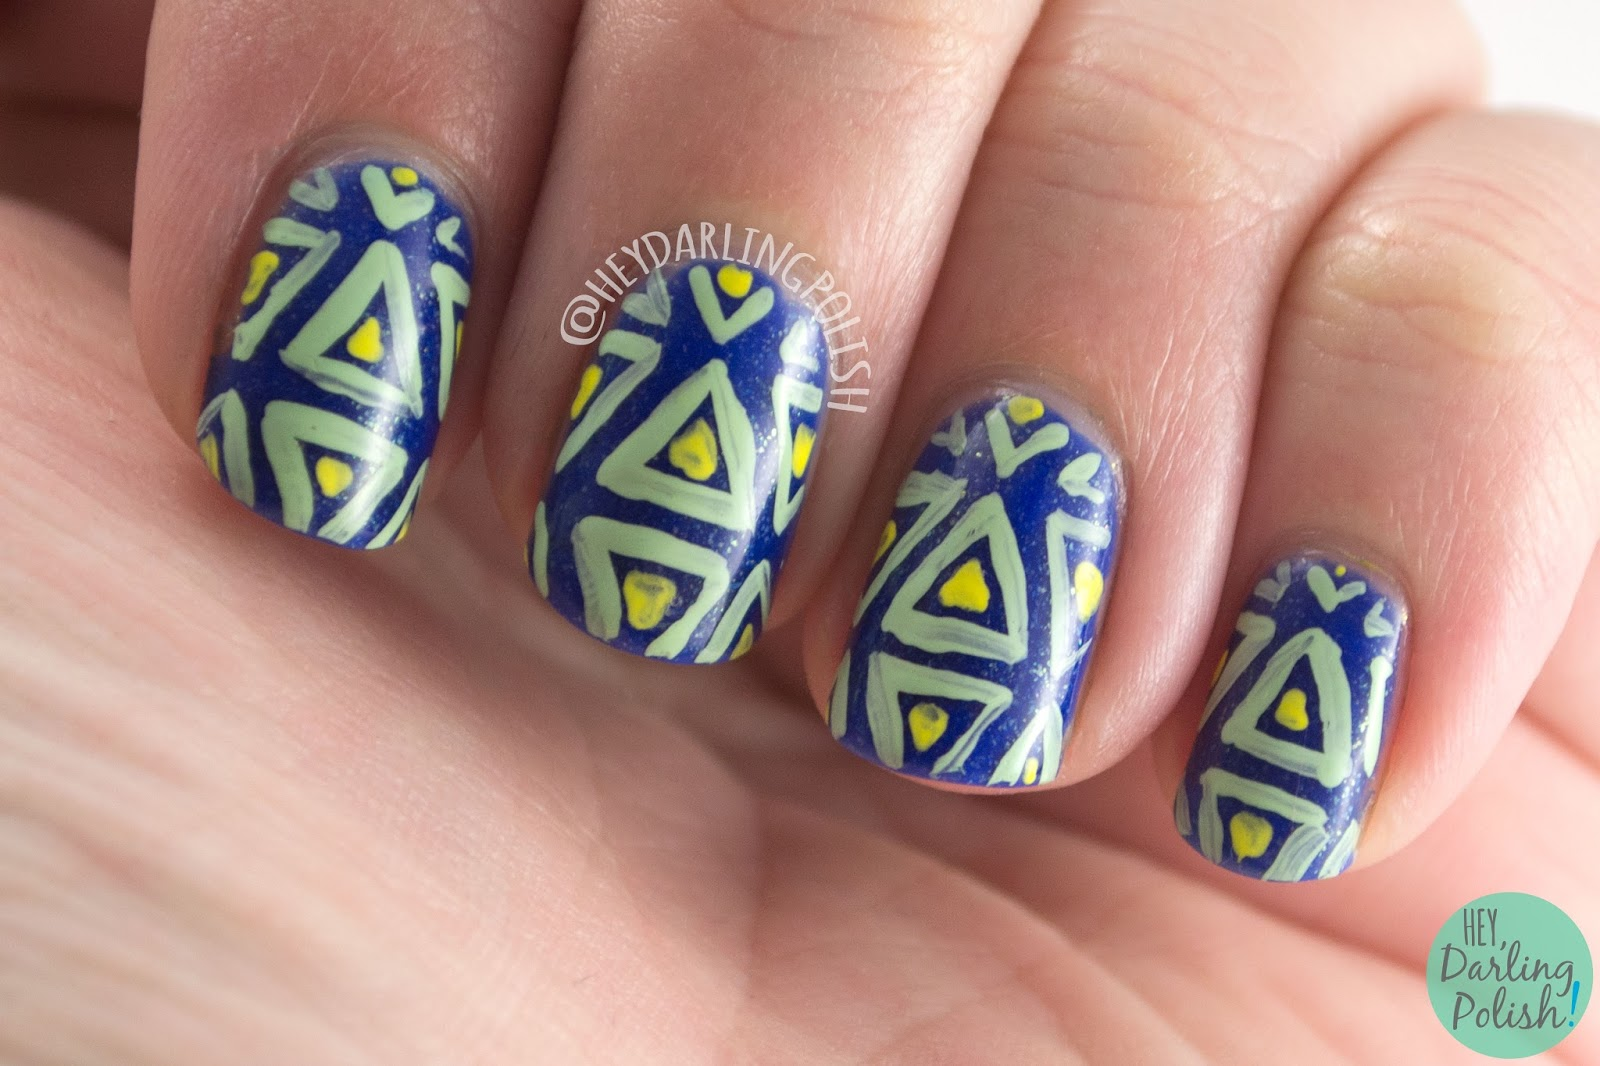 nails, nail art, nail polish, triangles, indie polish, hey darling polish, geometric, 52 week challenge